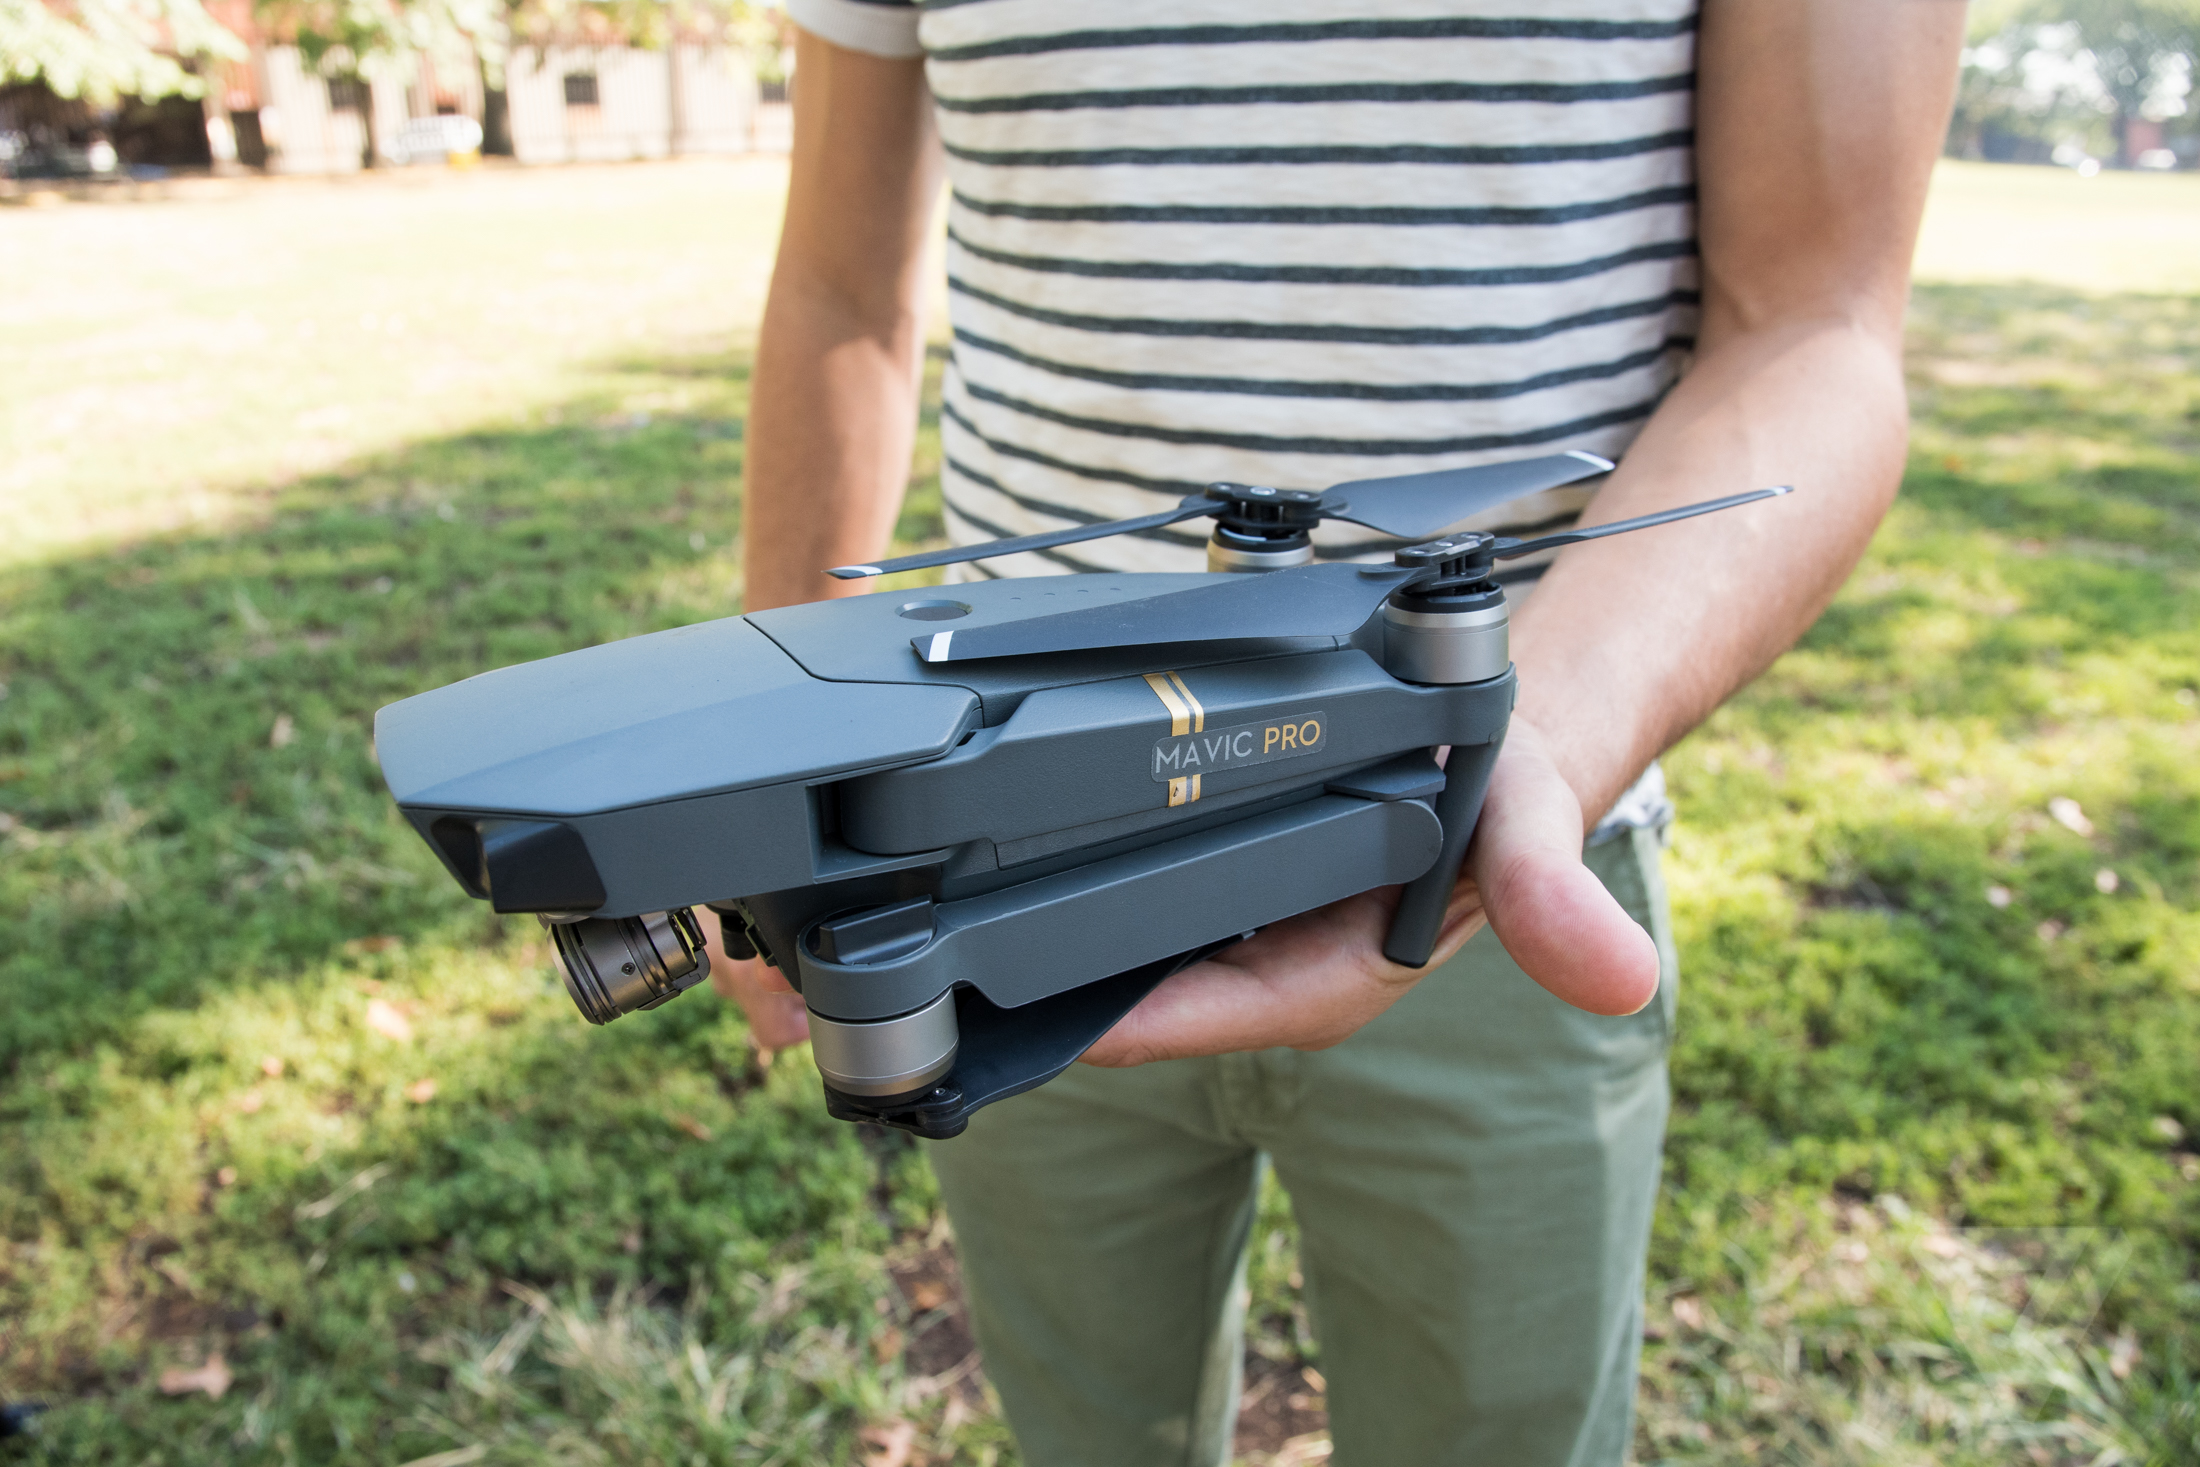 72fd0c1fa57 DJI's new Mavic Pro drone folds up and fits in the palm of your hand ...